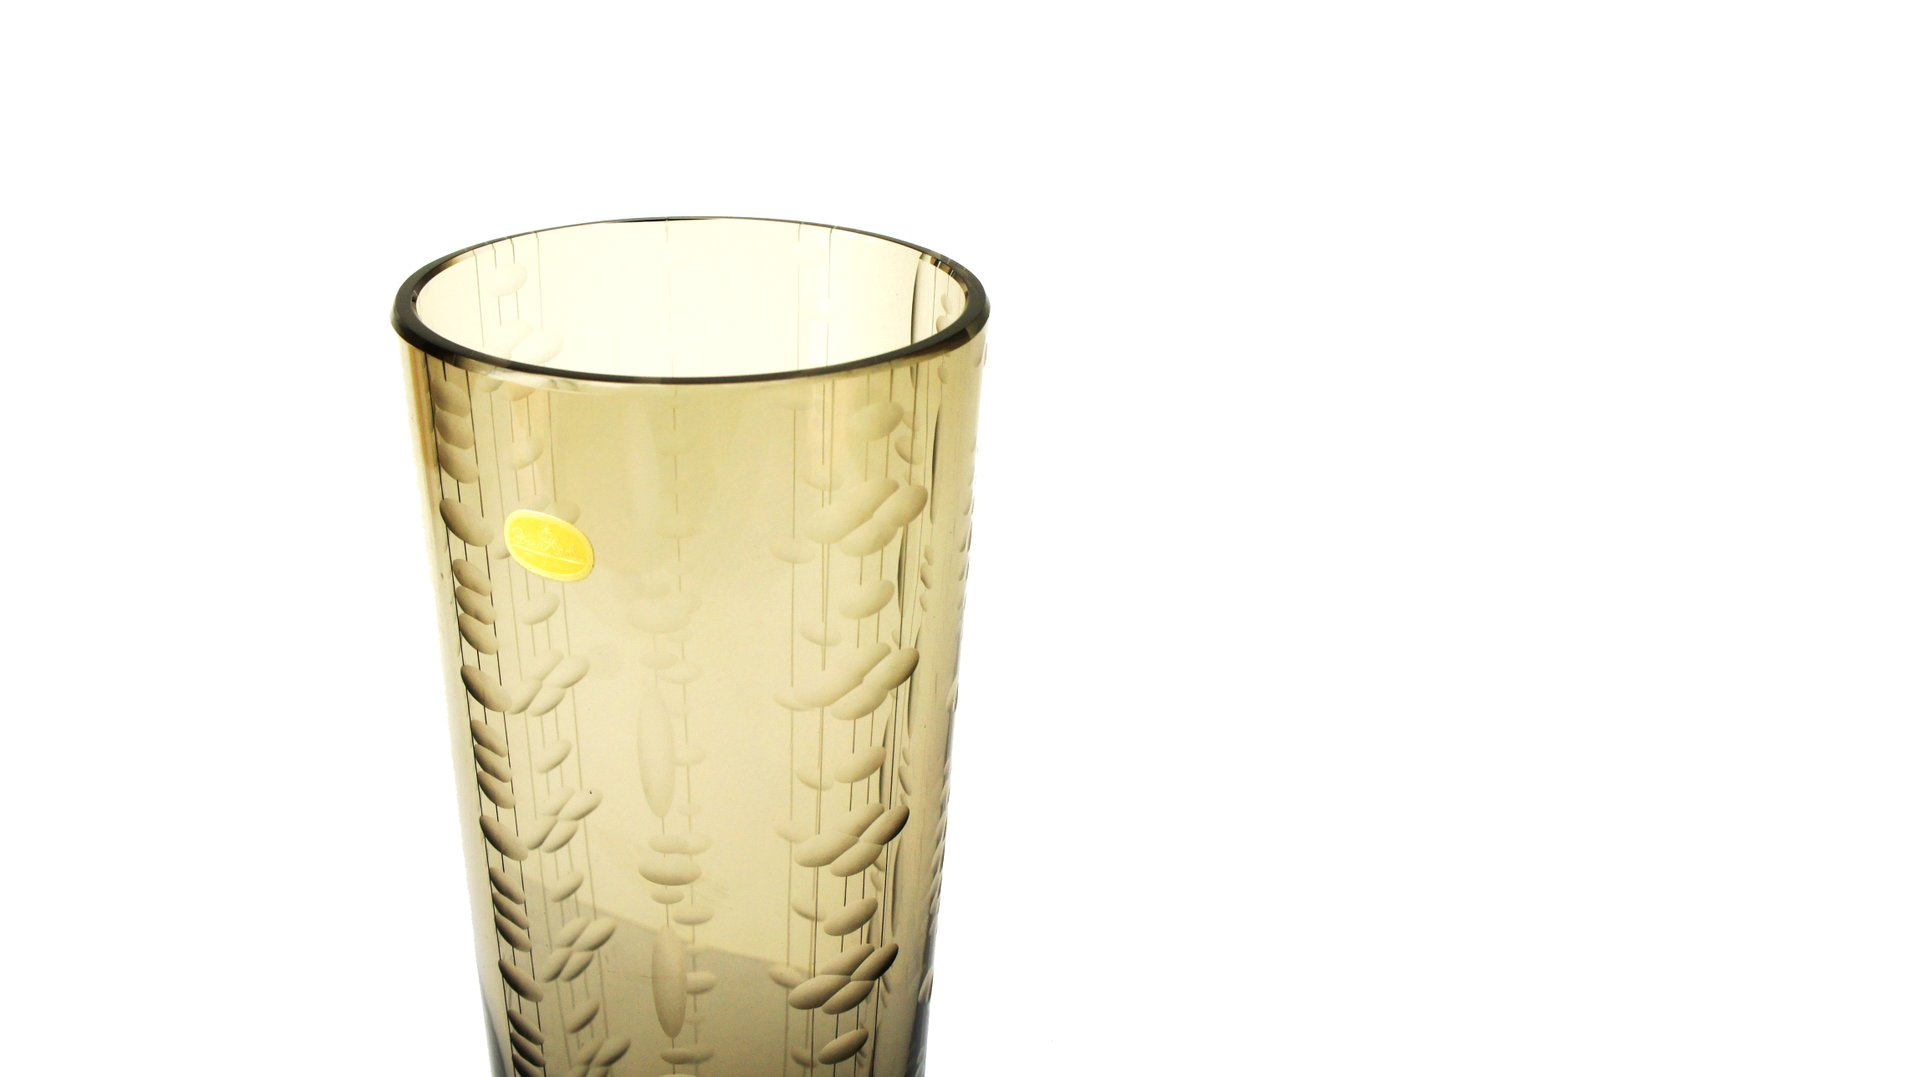 Vintage smoked glass vase from rosenthal for sale at pamono vintage smoked glass vase from rosenthal reviewsmspy